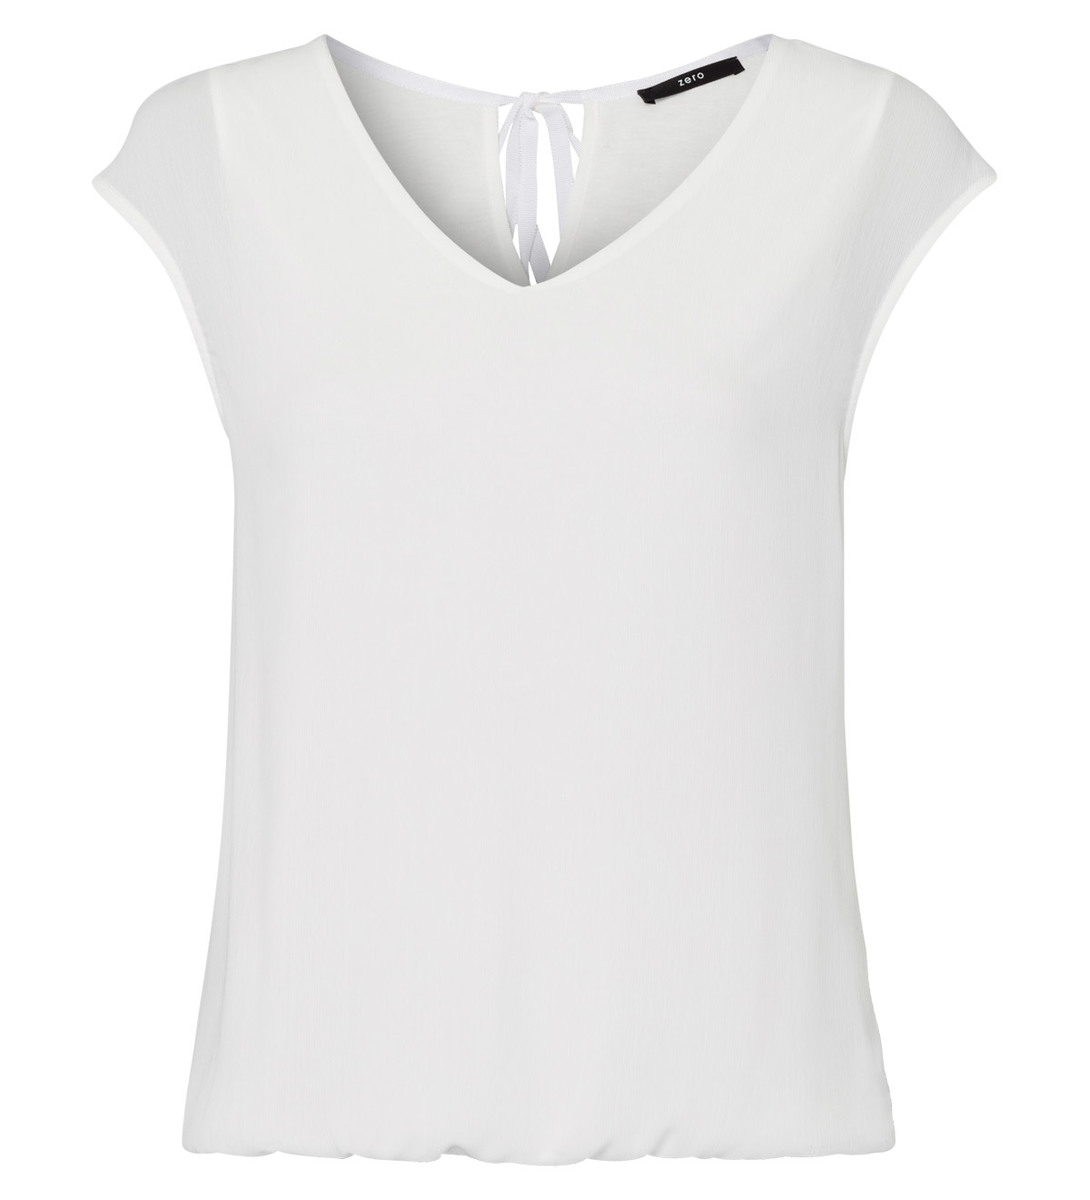 Chiffonbluse mit Bindedetail in offwhite